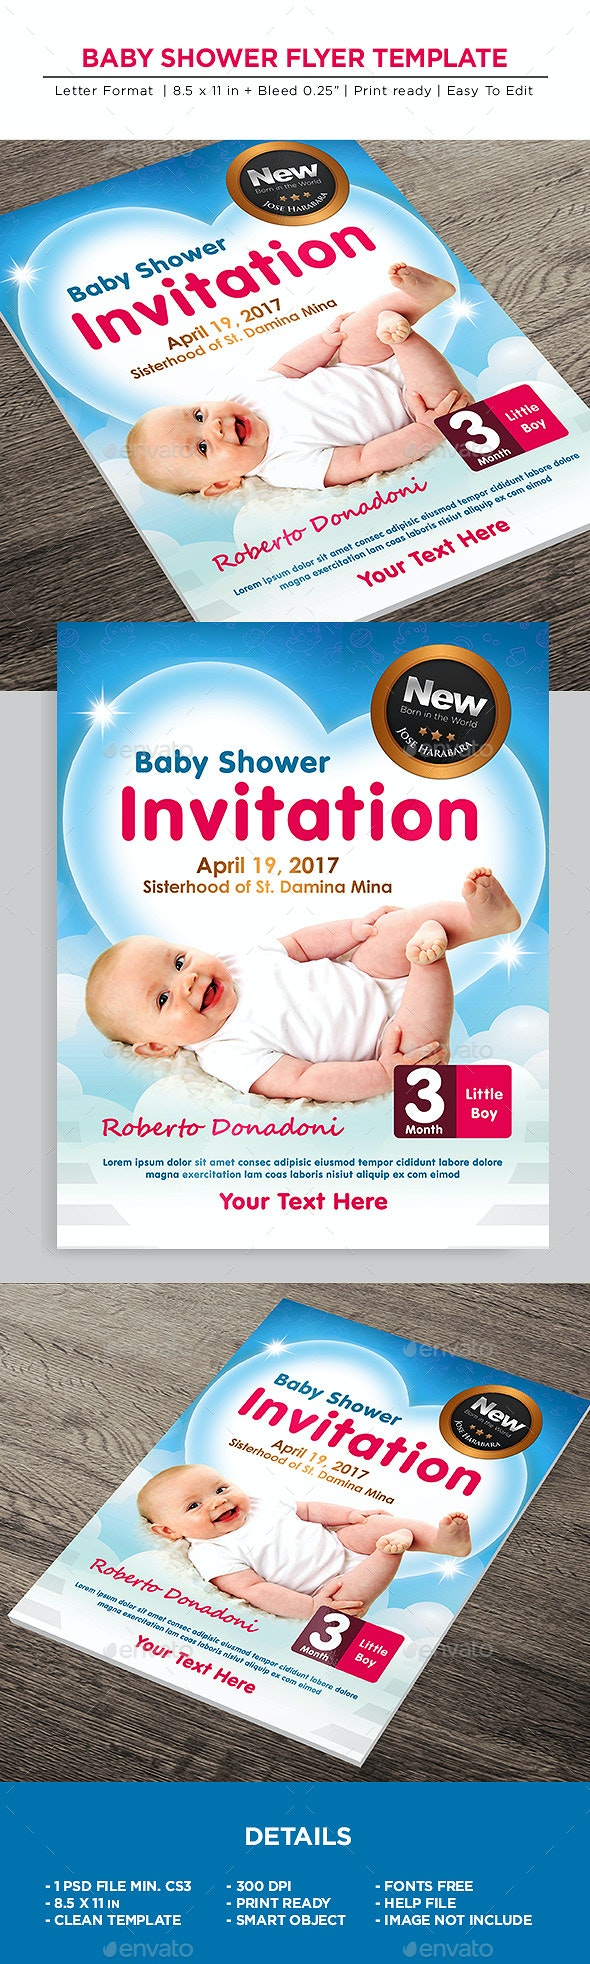 Baby Shower Flyer - Invitation Flyer - Miscellaneous Events